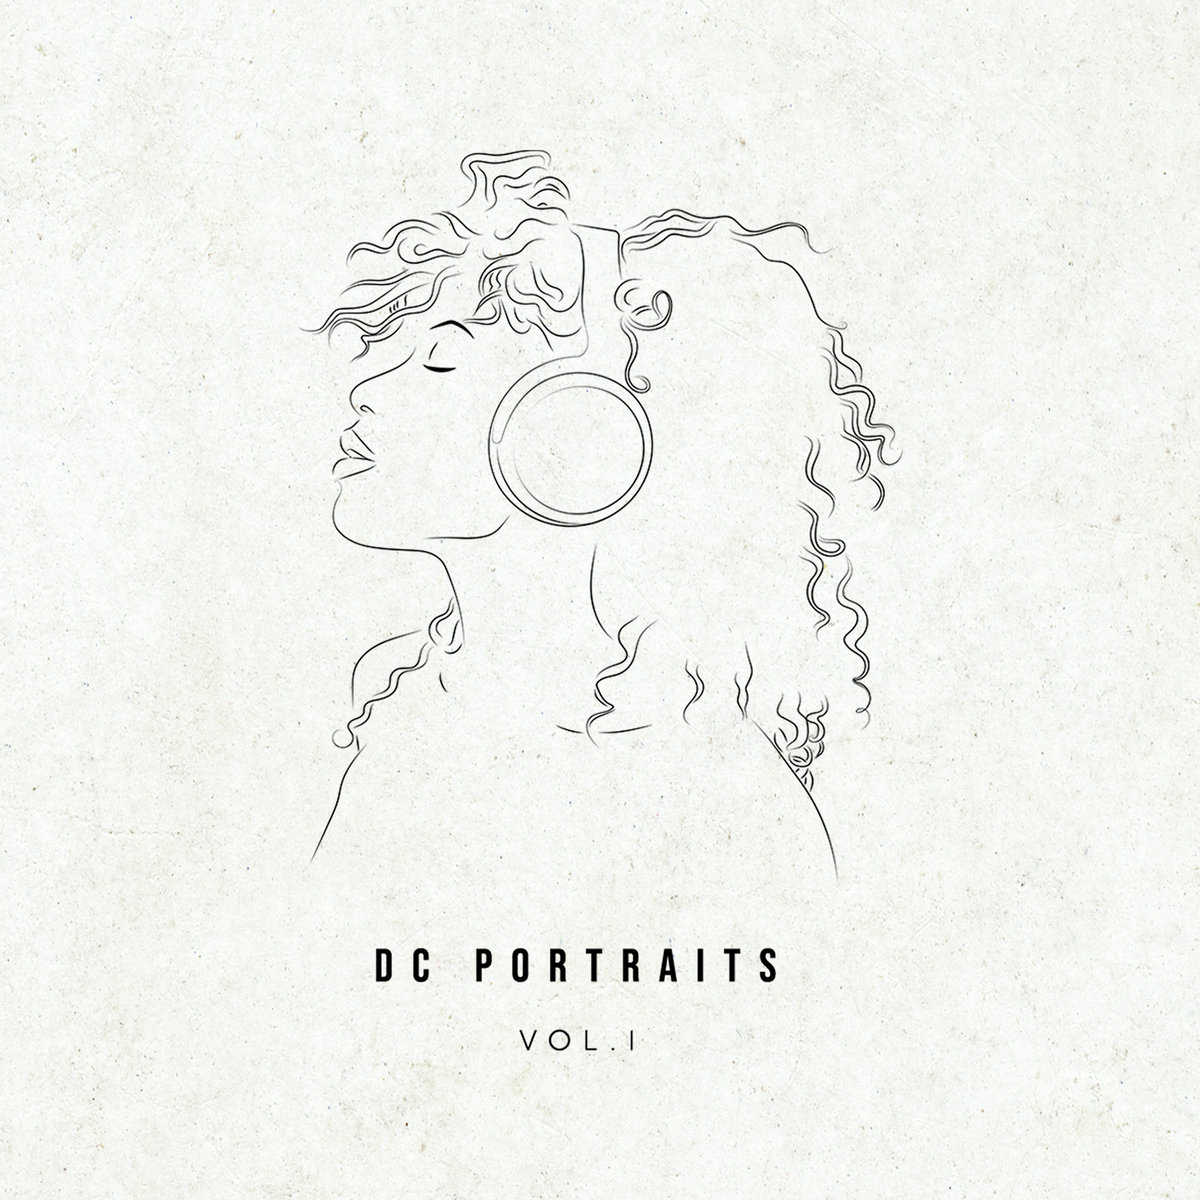 DC Portraits Vol. 1